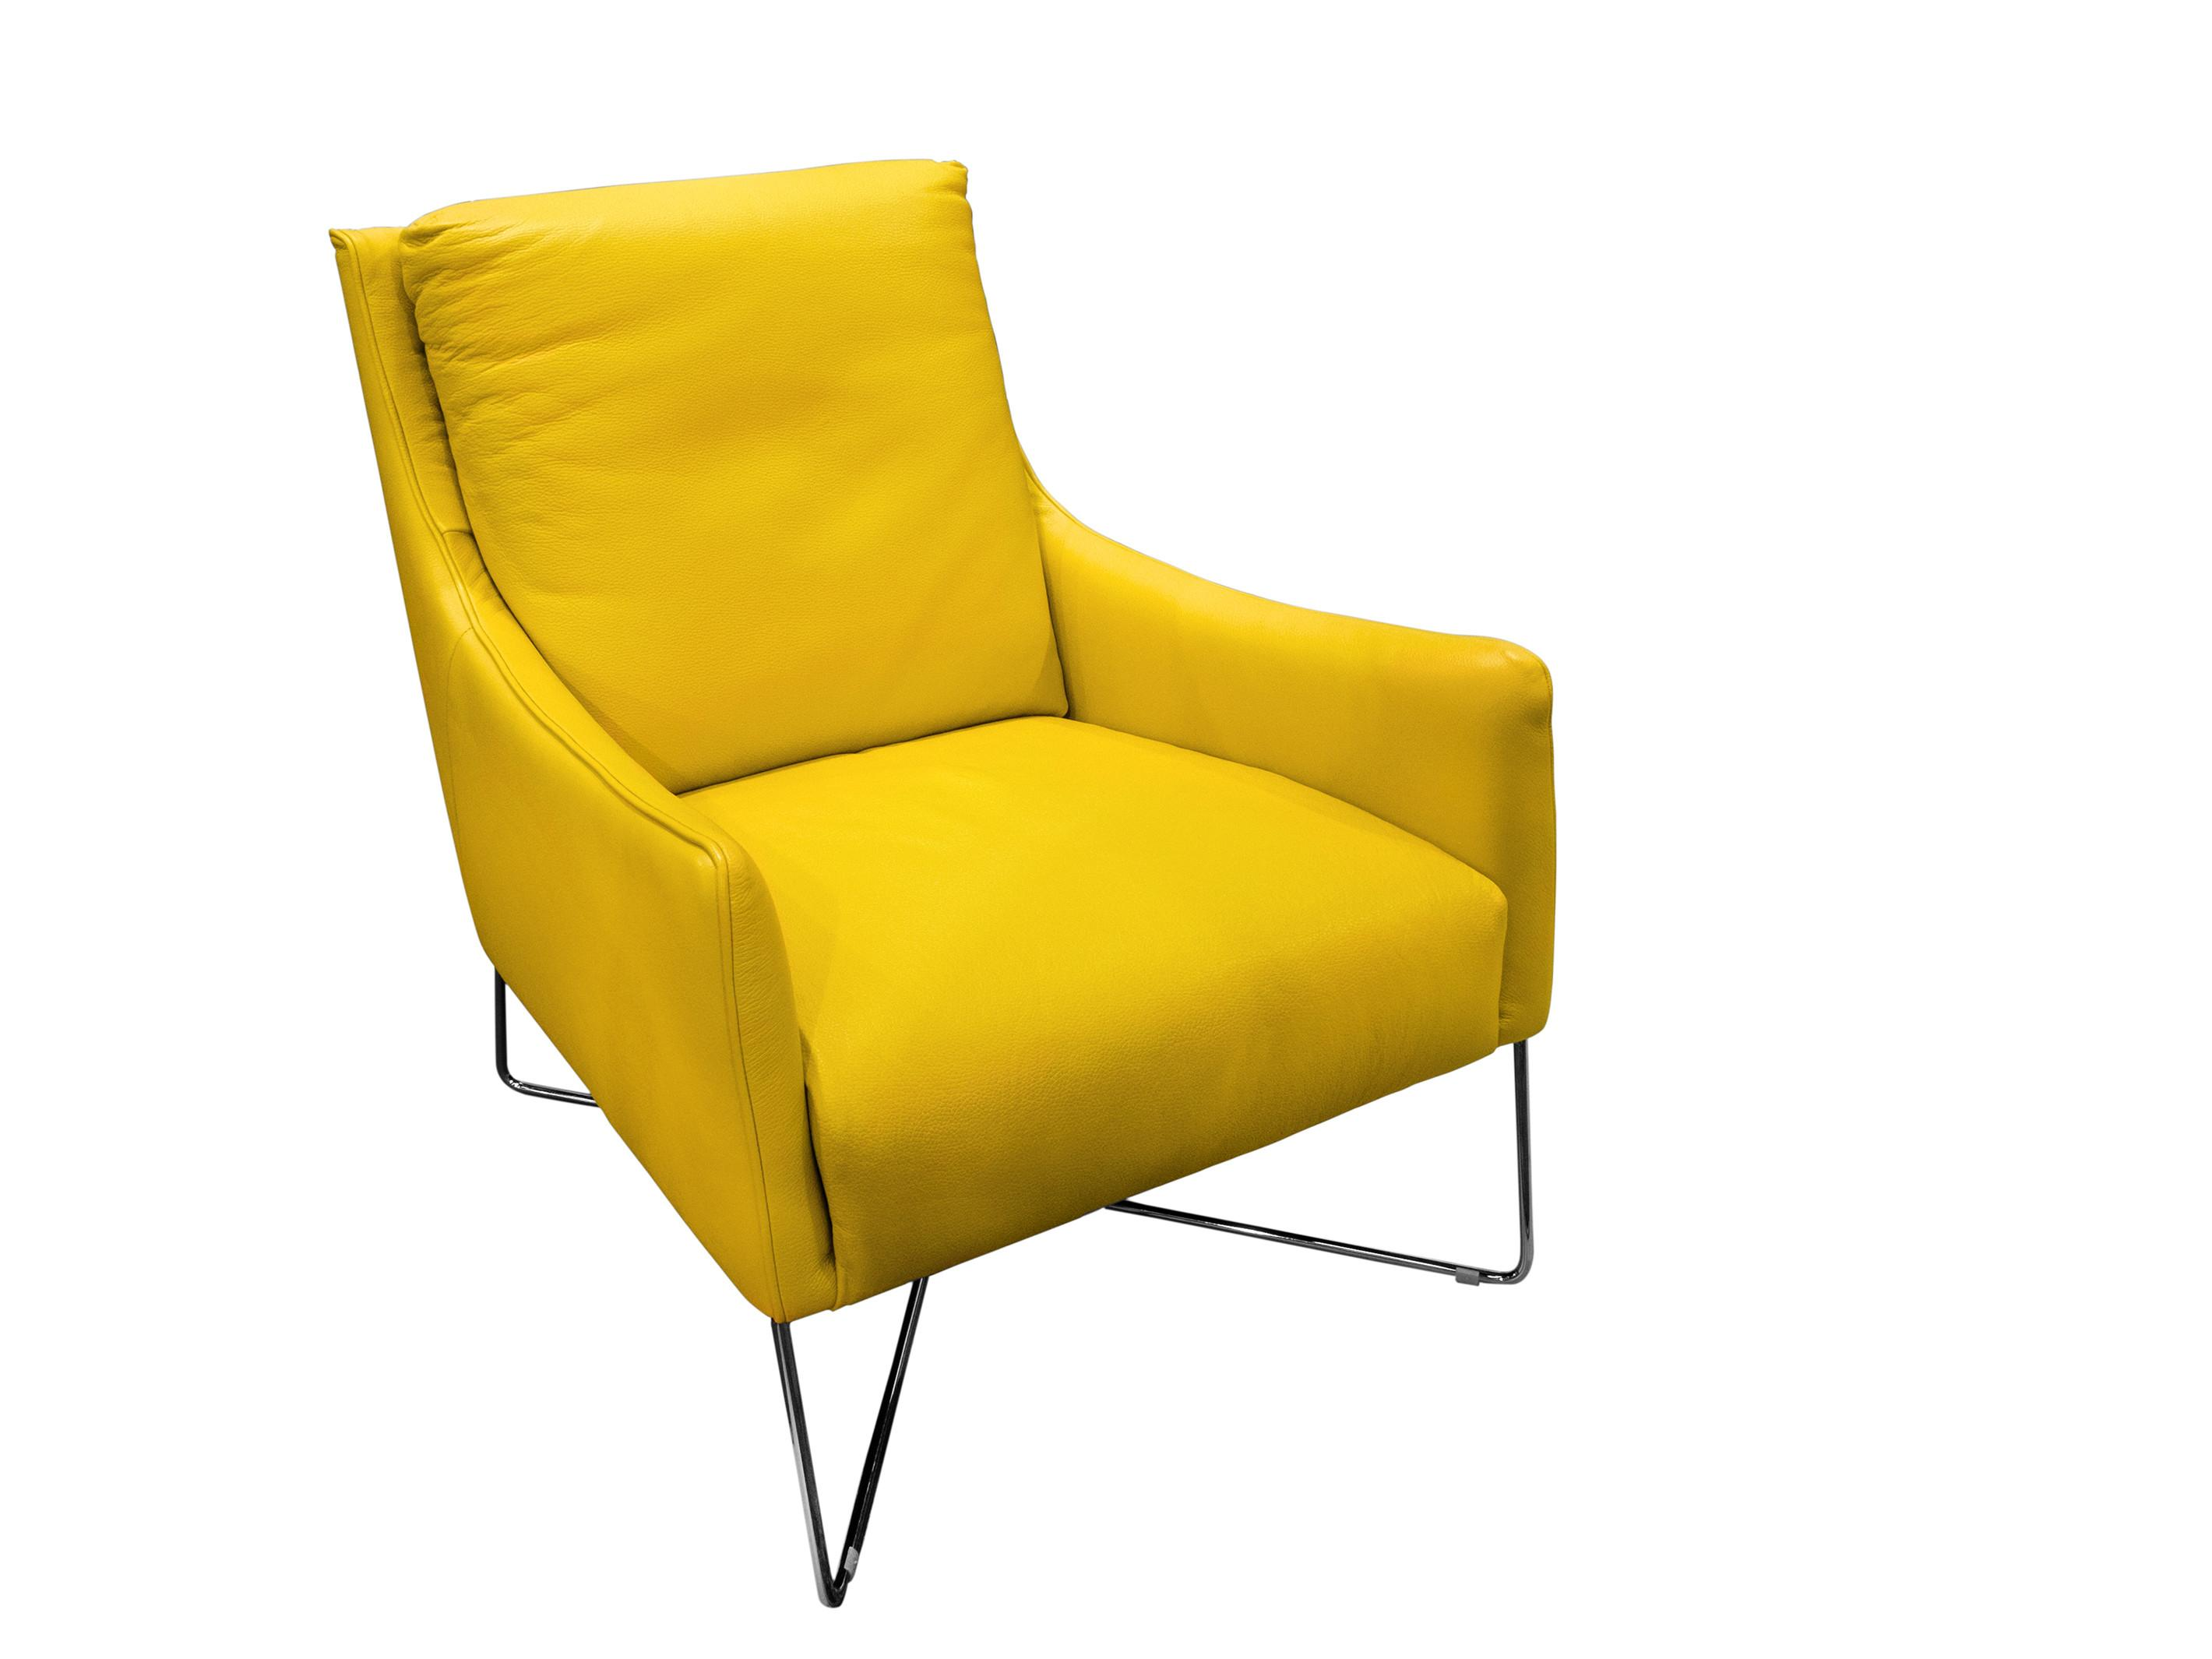 Top Yellow Chair Buy Eames Style Bright